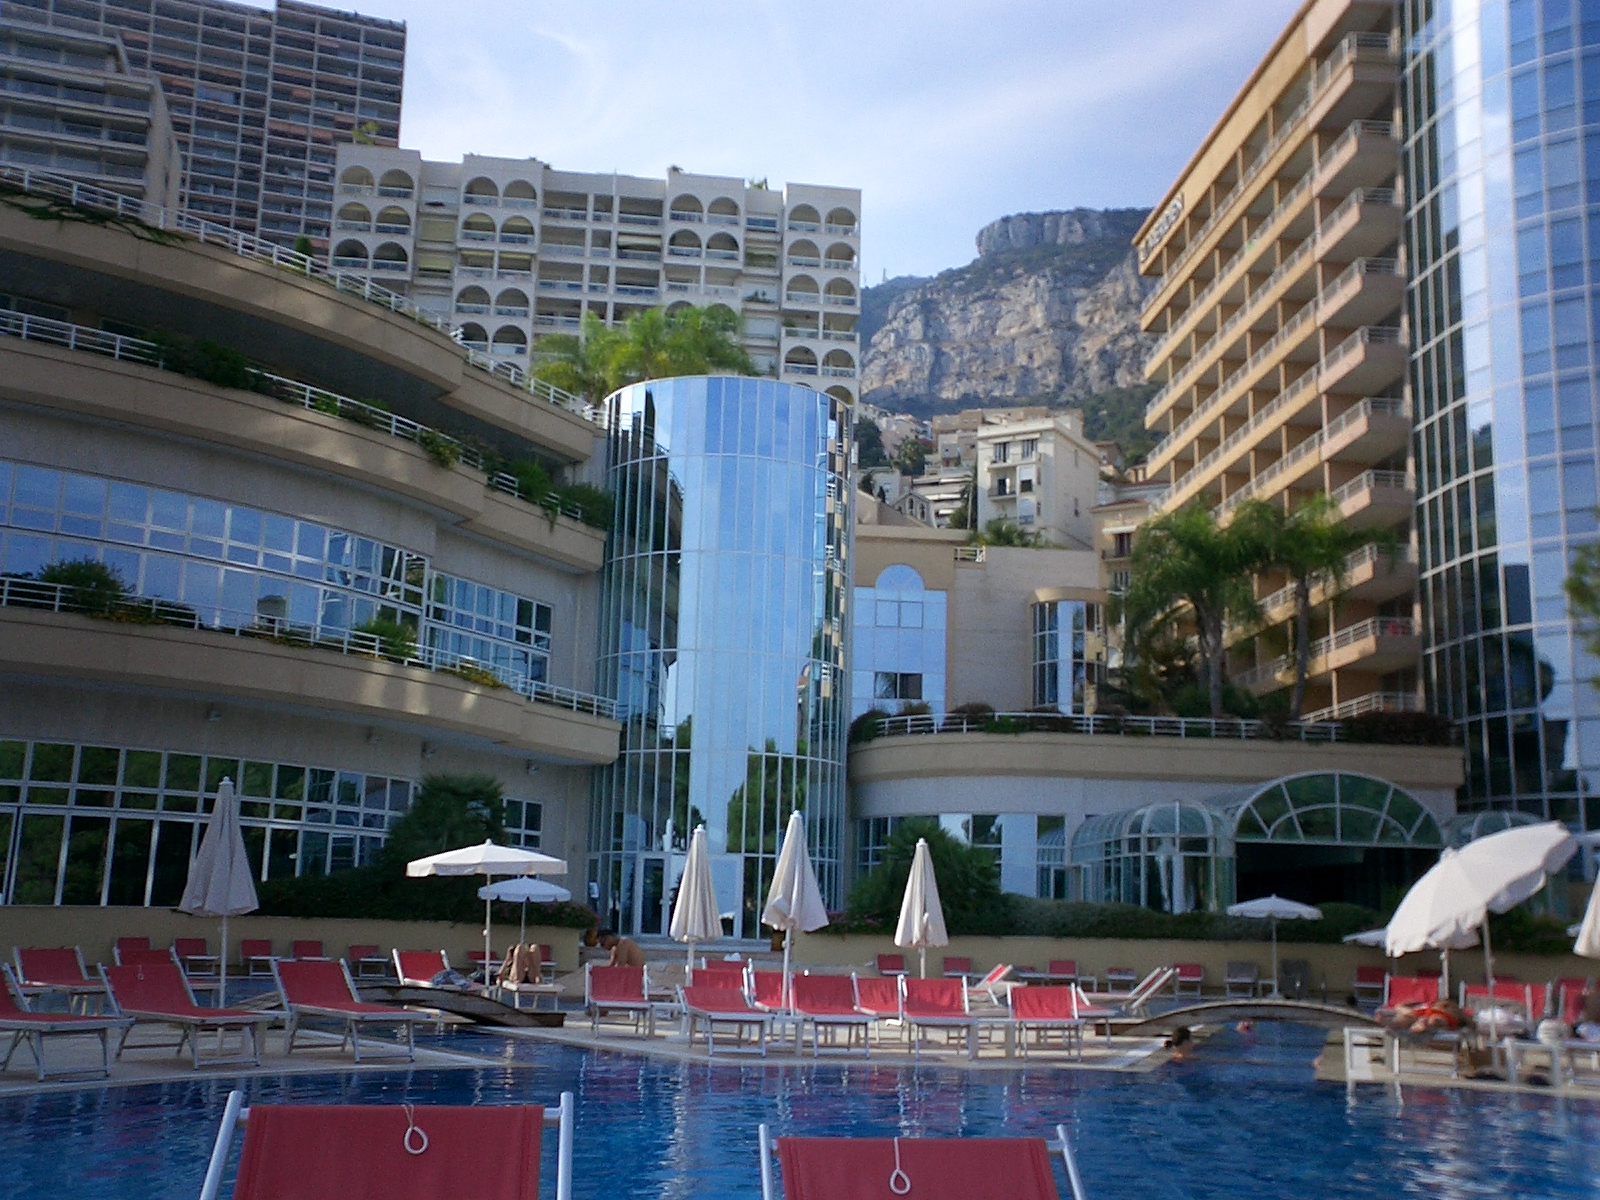 Filele Meri N Beach Plaza Monaco Panoramio Kajikawa